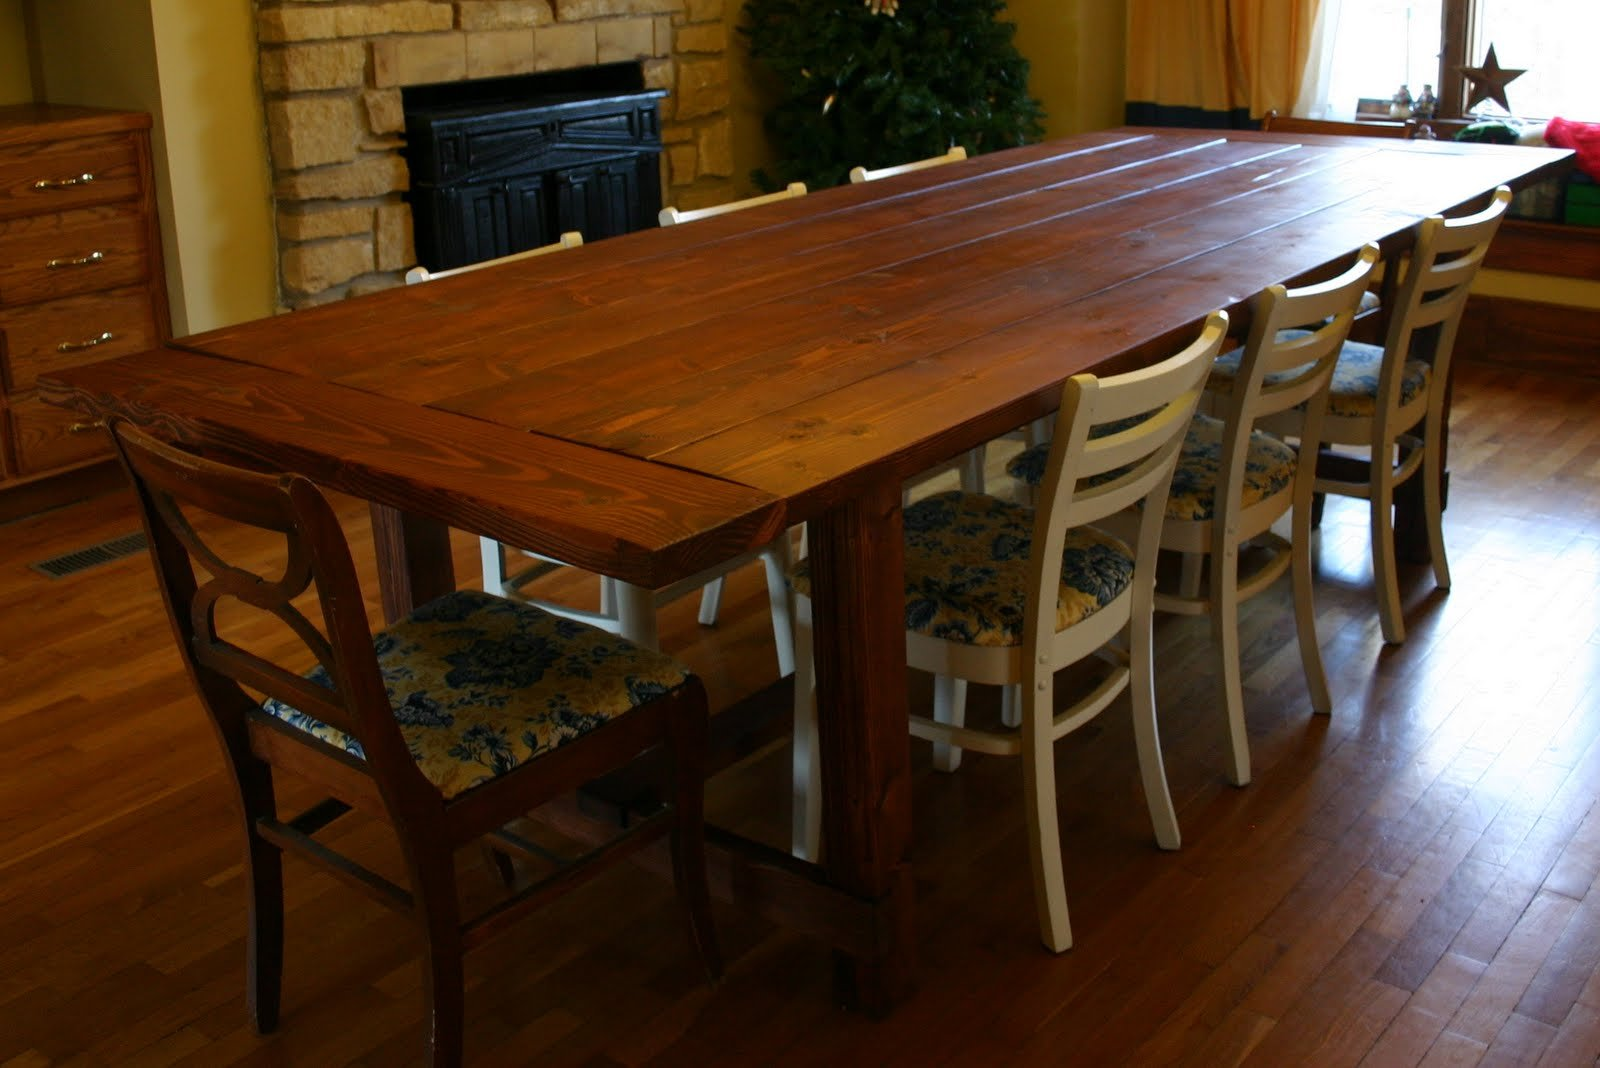 Pleasing Rustic Dining Table Plans Large And Beautiful Photos Home Interior And Landscaping Ologienasavecom